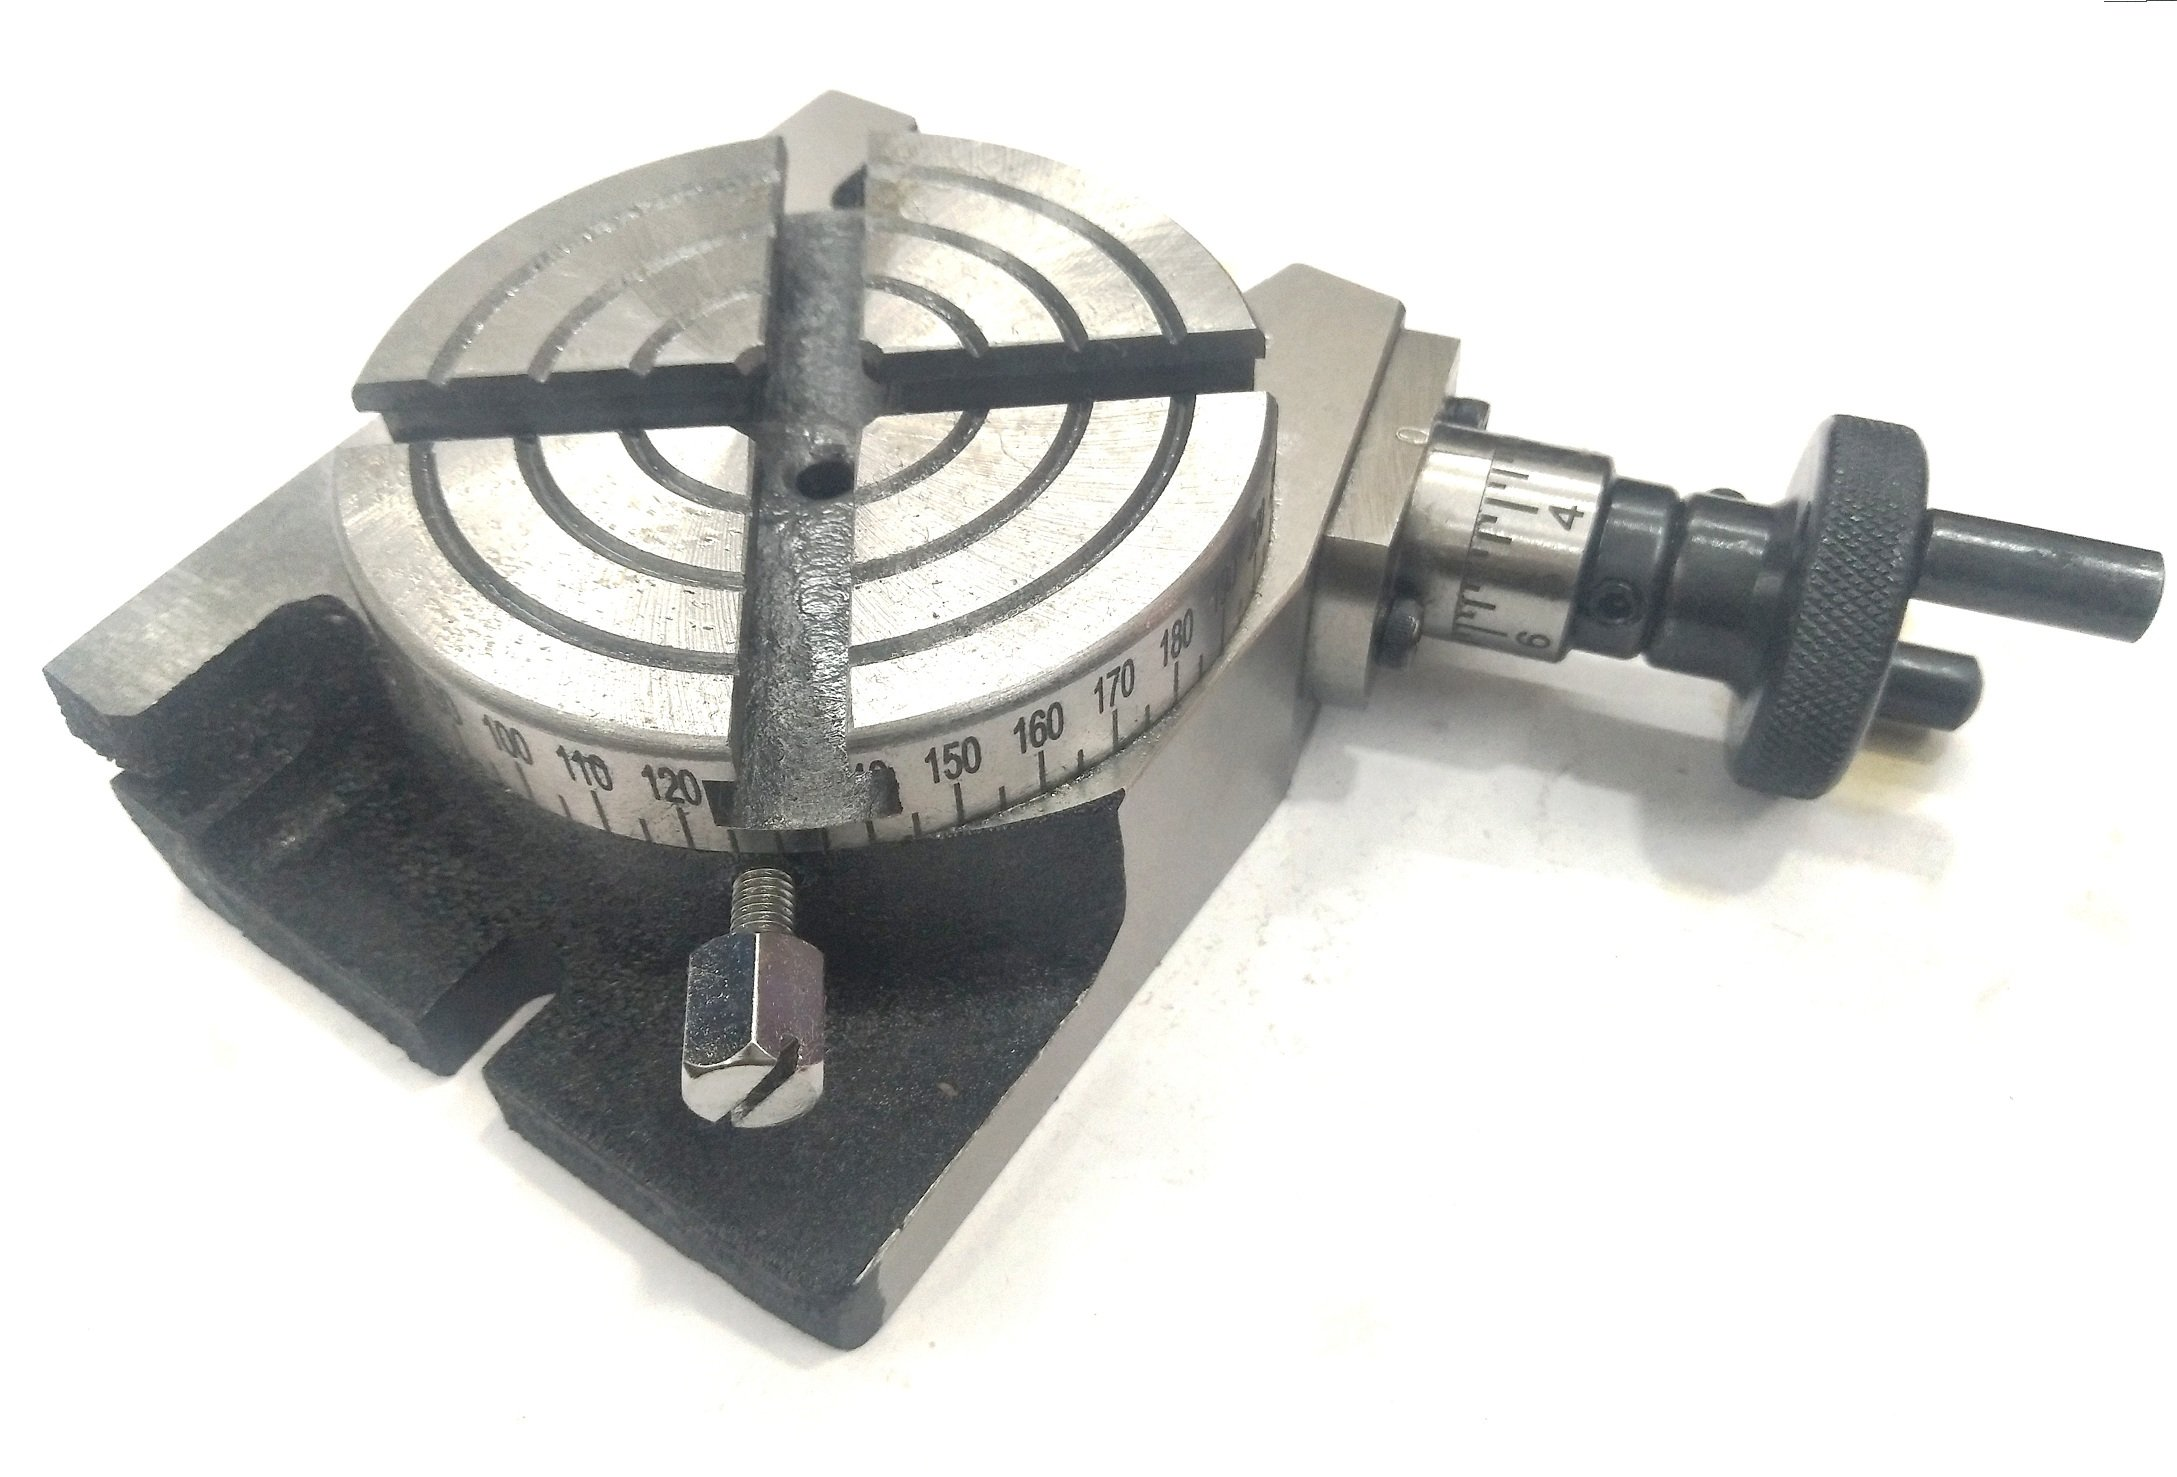 New 4'' Inches (100 mm) Quality Regular Rotary Table for Milling Machines by Global Tools